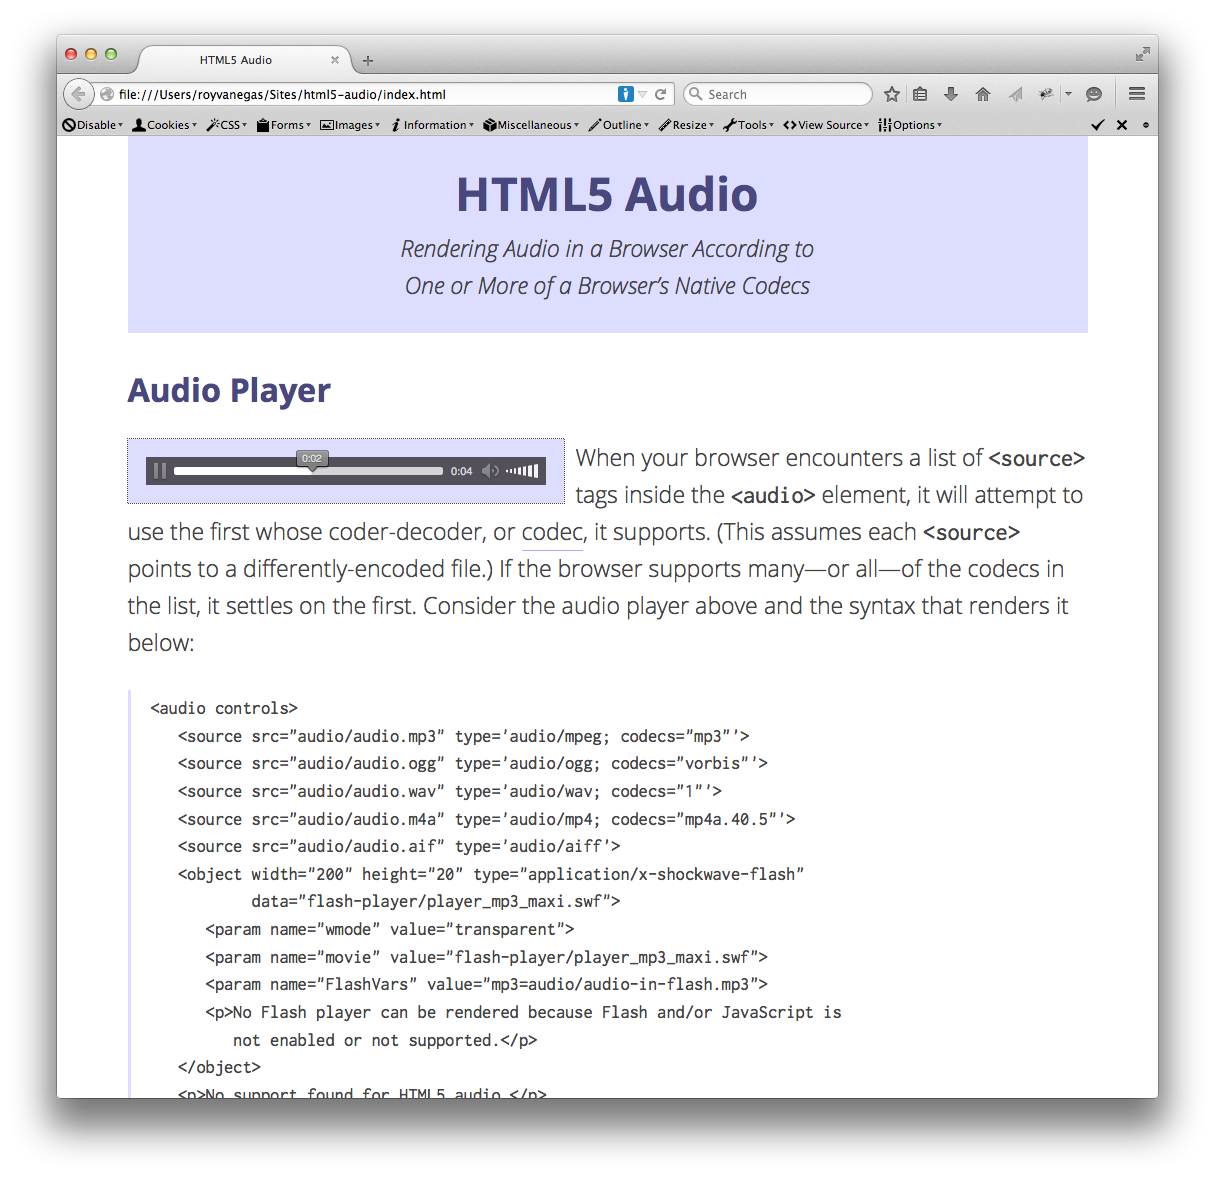 A screen grab of the HTML5 audio tutorial